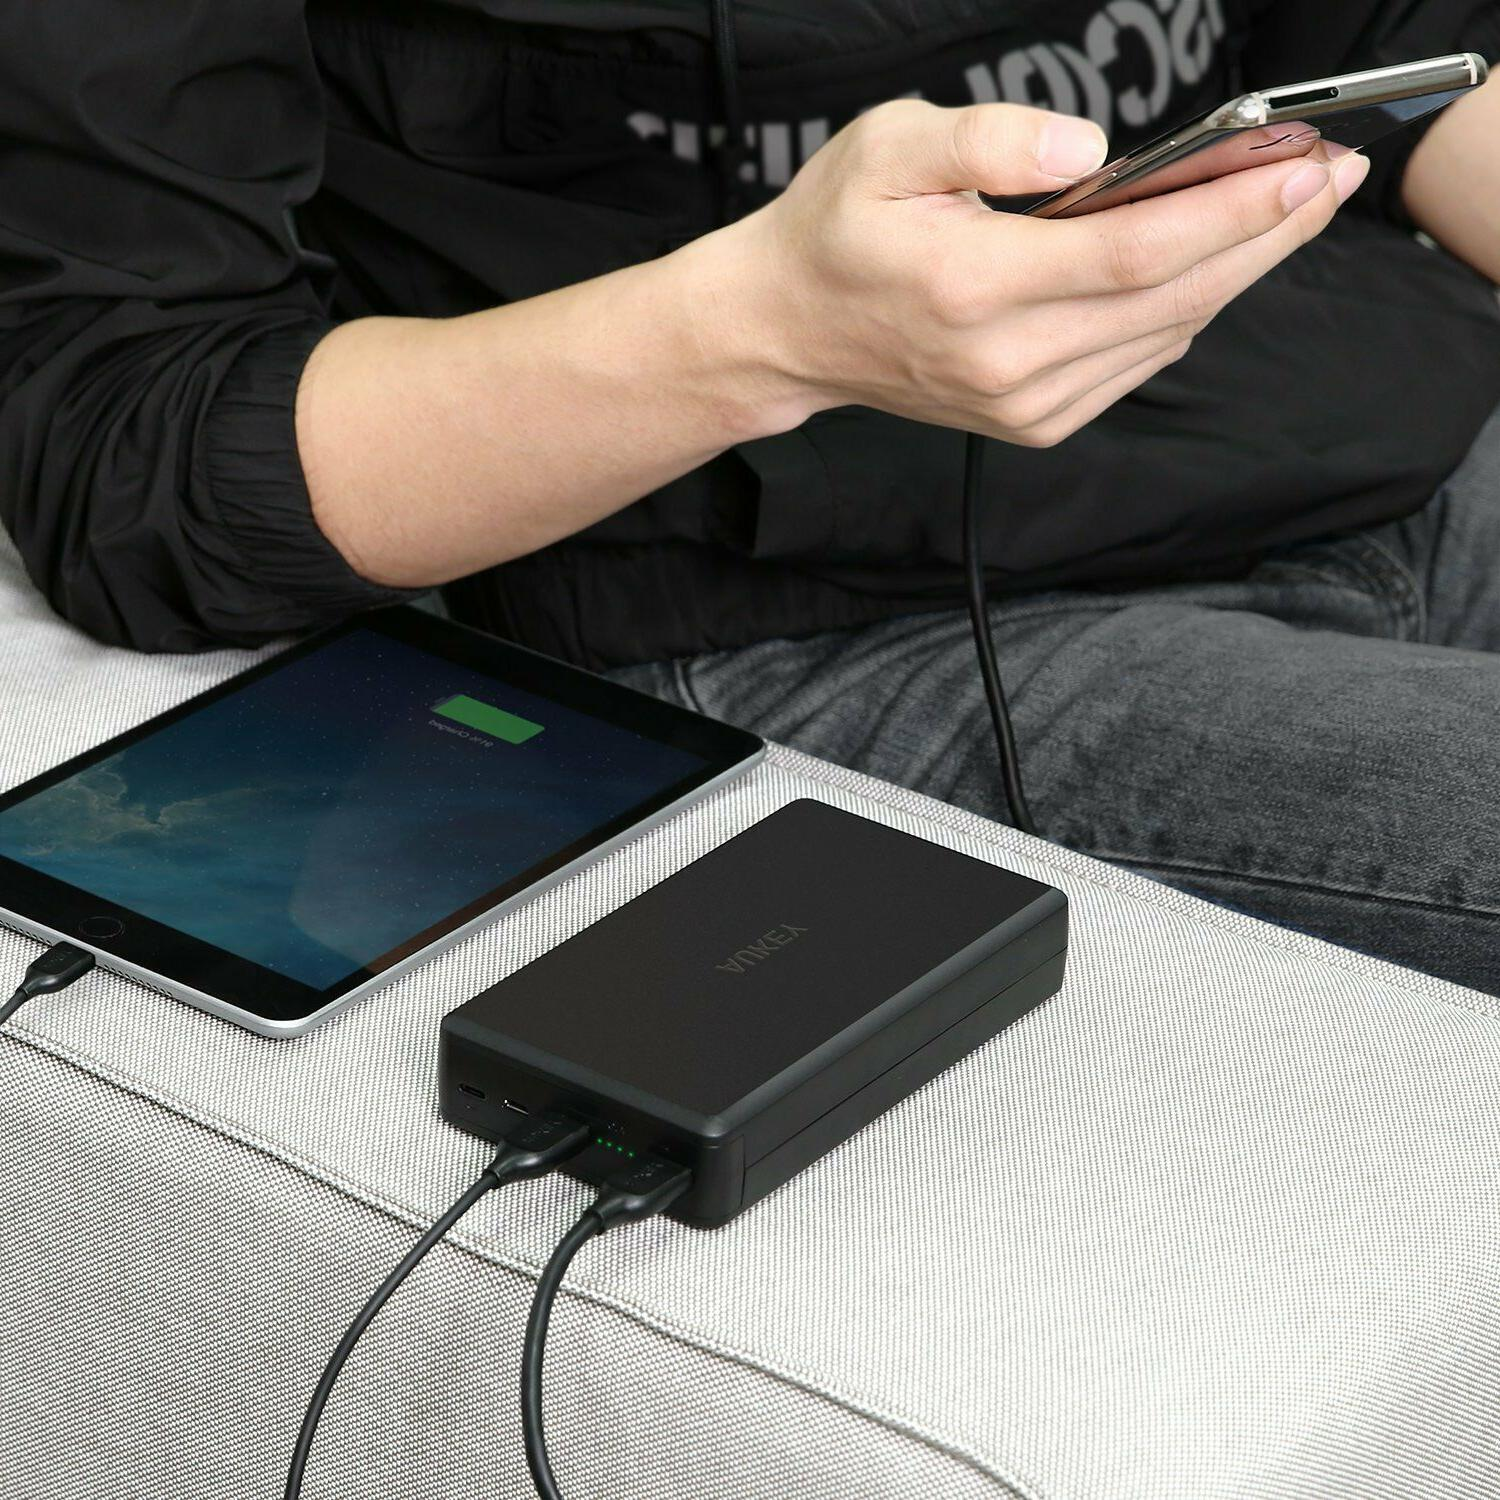 AUKEY Bank Quick Charge 3.0 Portable Charger, Input Battery